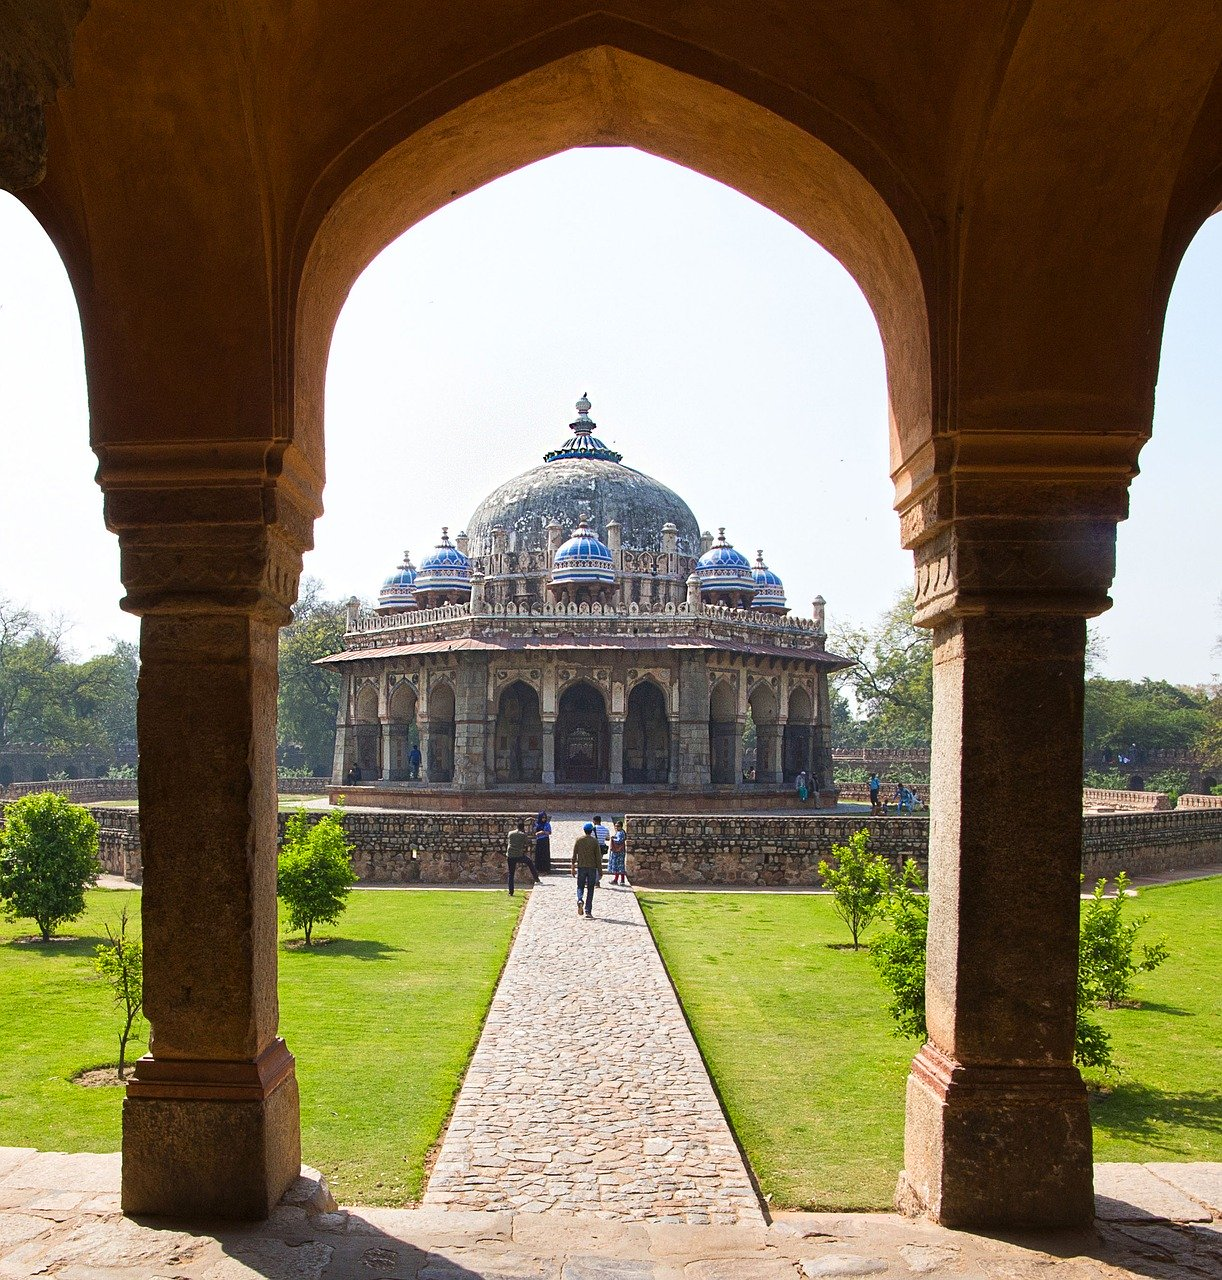 Delhi Travel Guide: DIY Itinerary, Places To Stay, Things To Do, And More